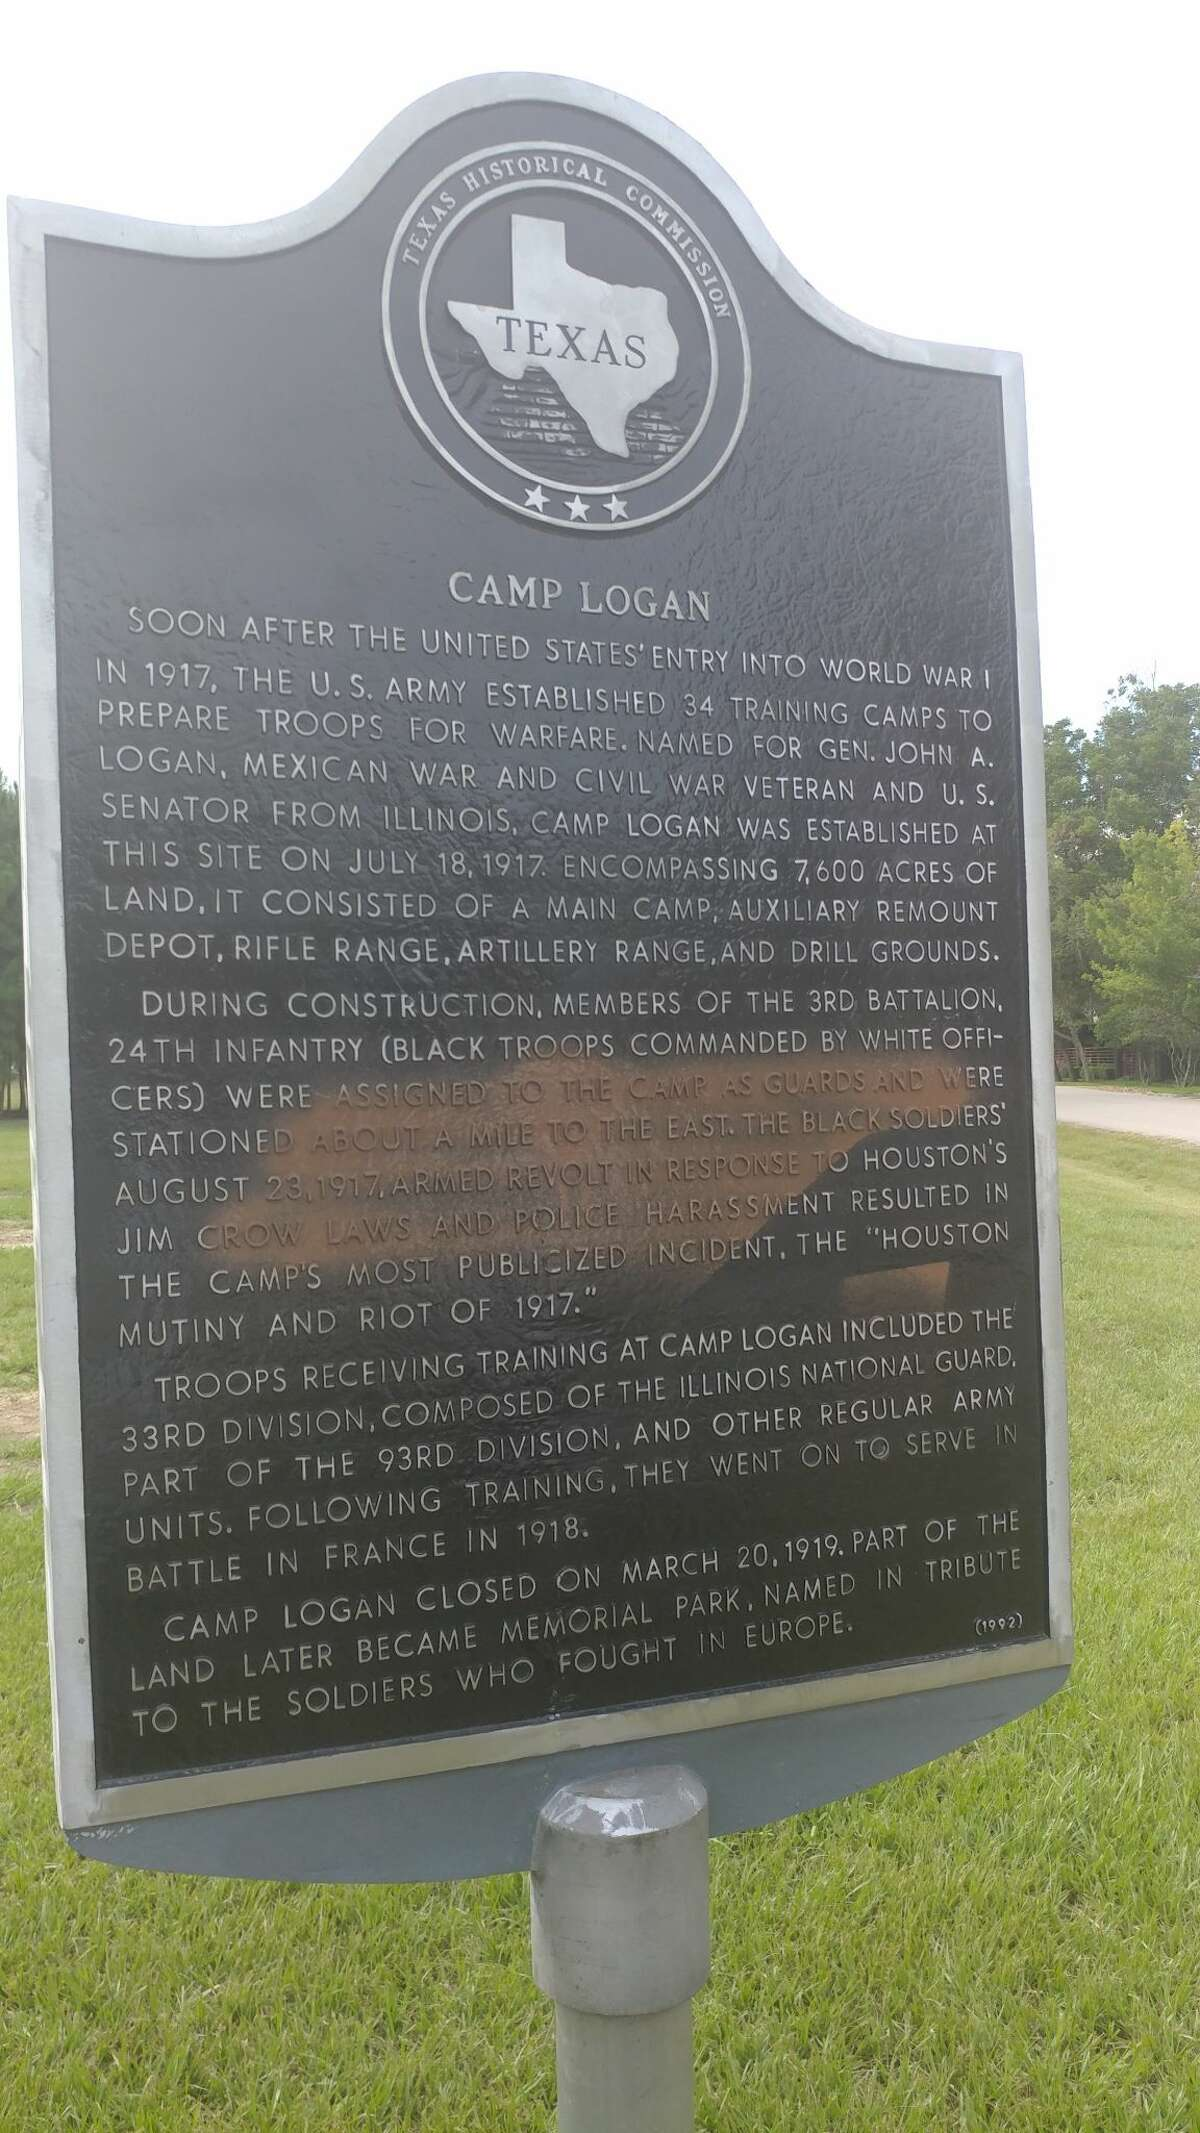 Spray paint was found on the newly restored Camp Logan historical marker in Memorial Park on Aug. 24, 2017 mere hours after its rededication on Aug. 23, 2017. The attack comes less than a day after the state historical monument, scarred on its back by previous damage, was unveiled by officials, preservationist and history lovers. The program included calls for